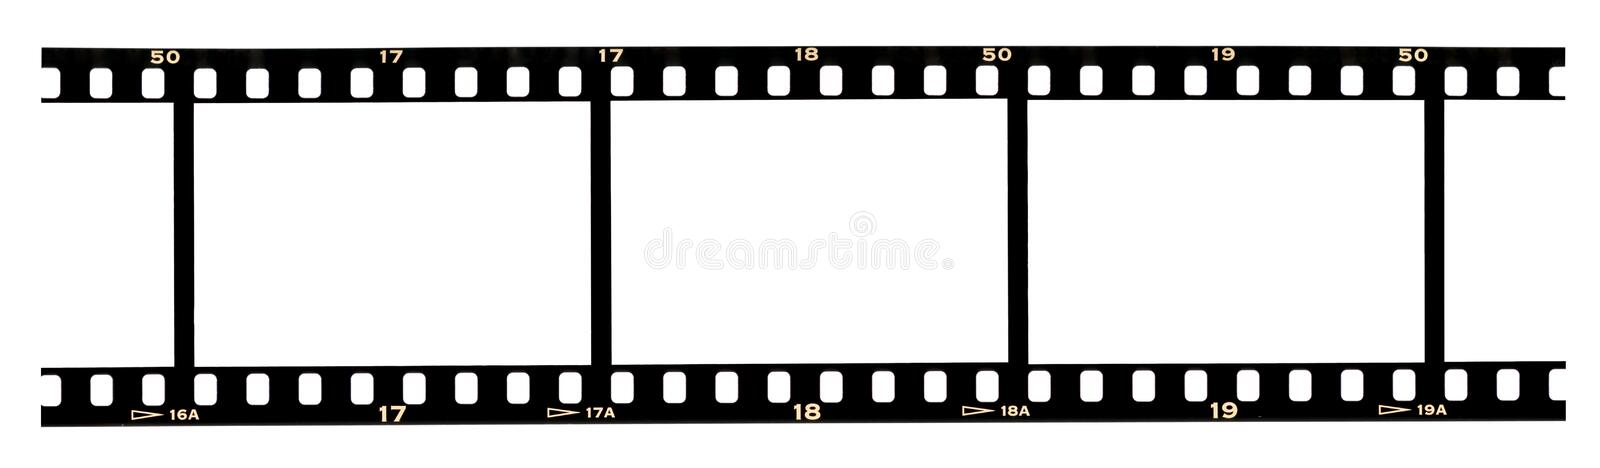 Filmstrip frames. Scanned slide filmstrip with blank space in frames and numbers near perforation stock photography